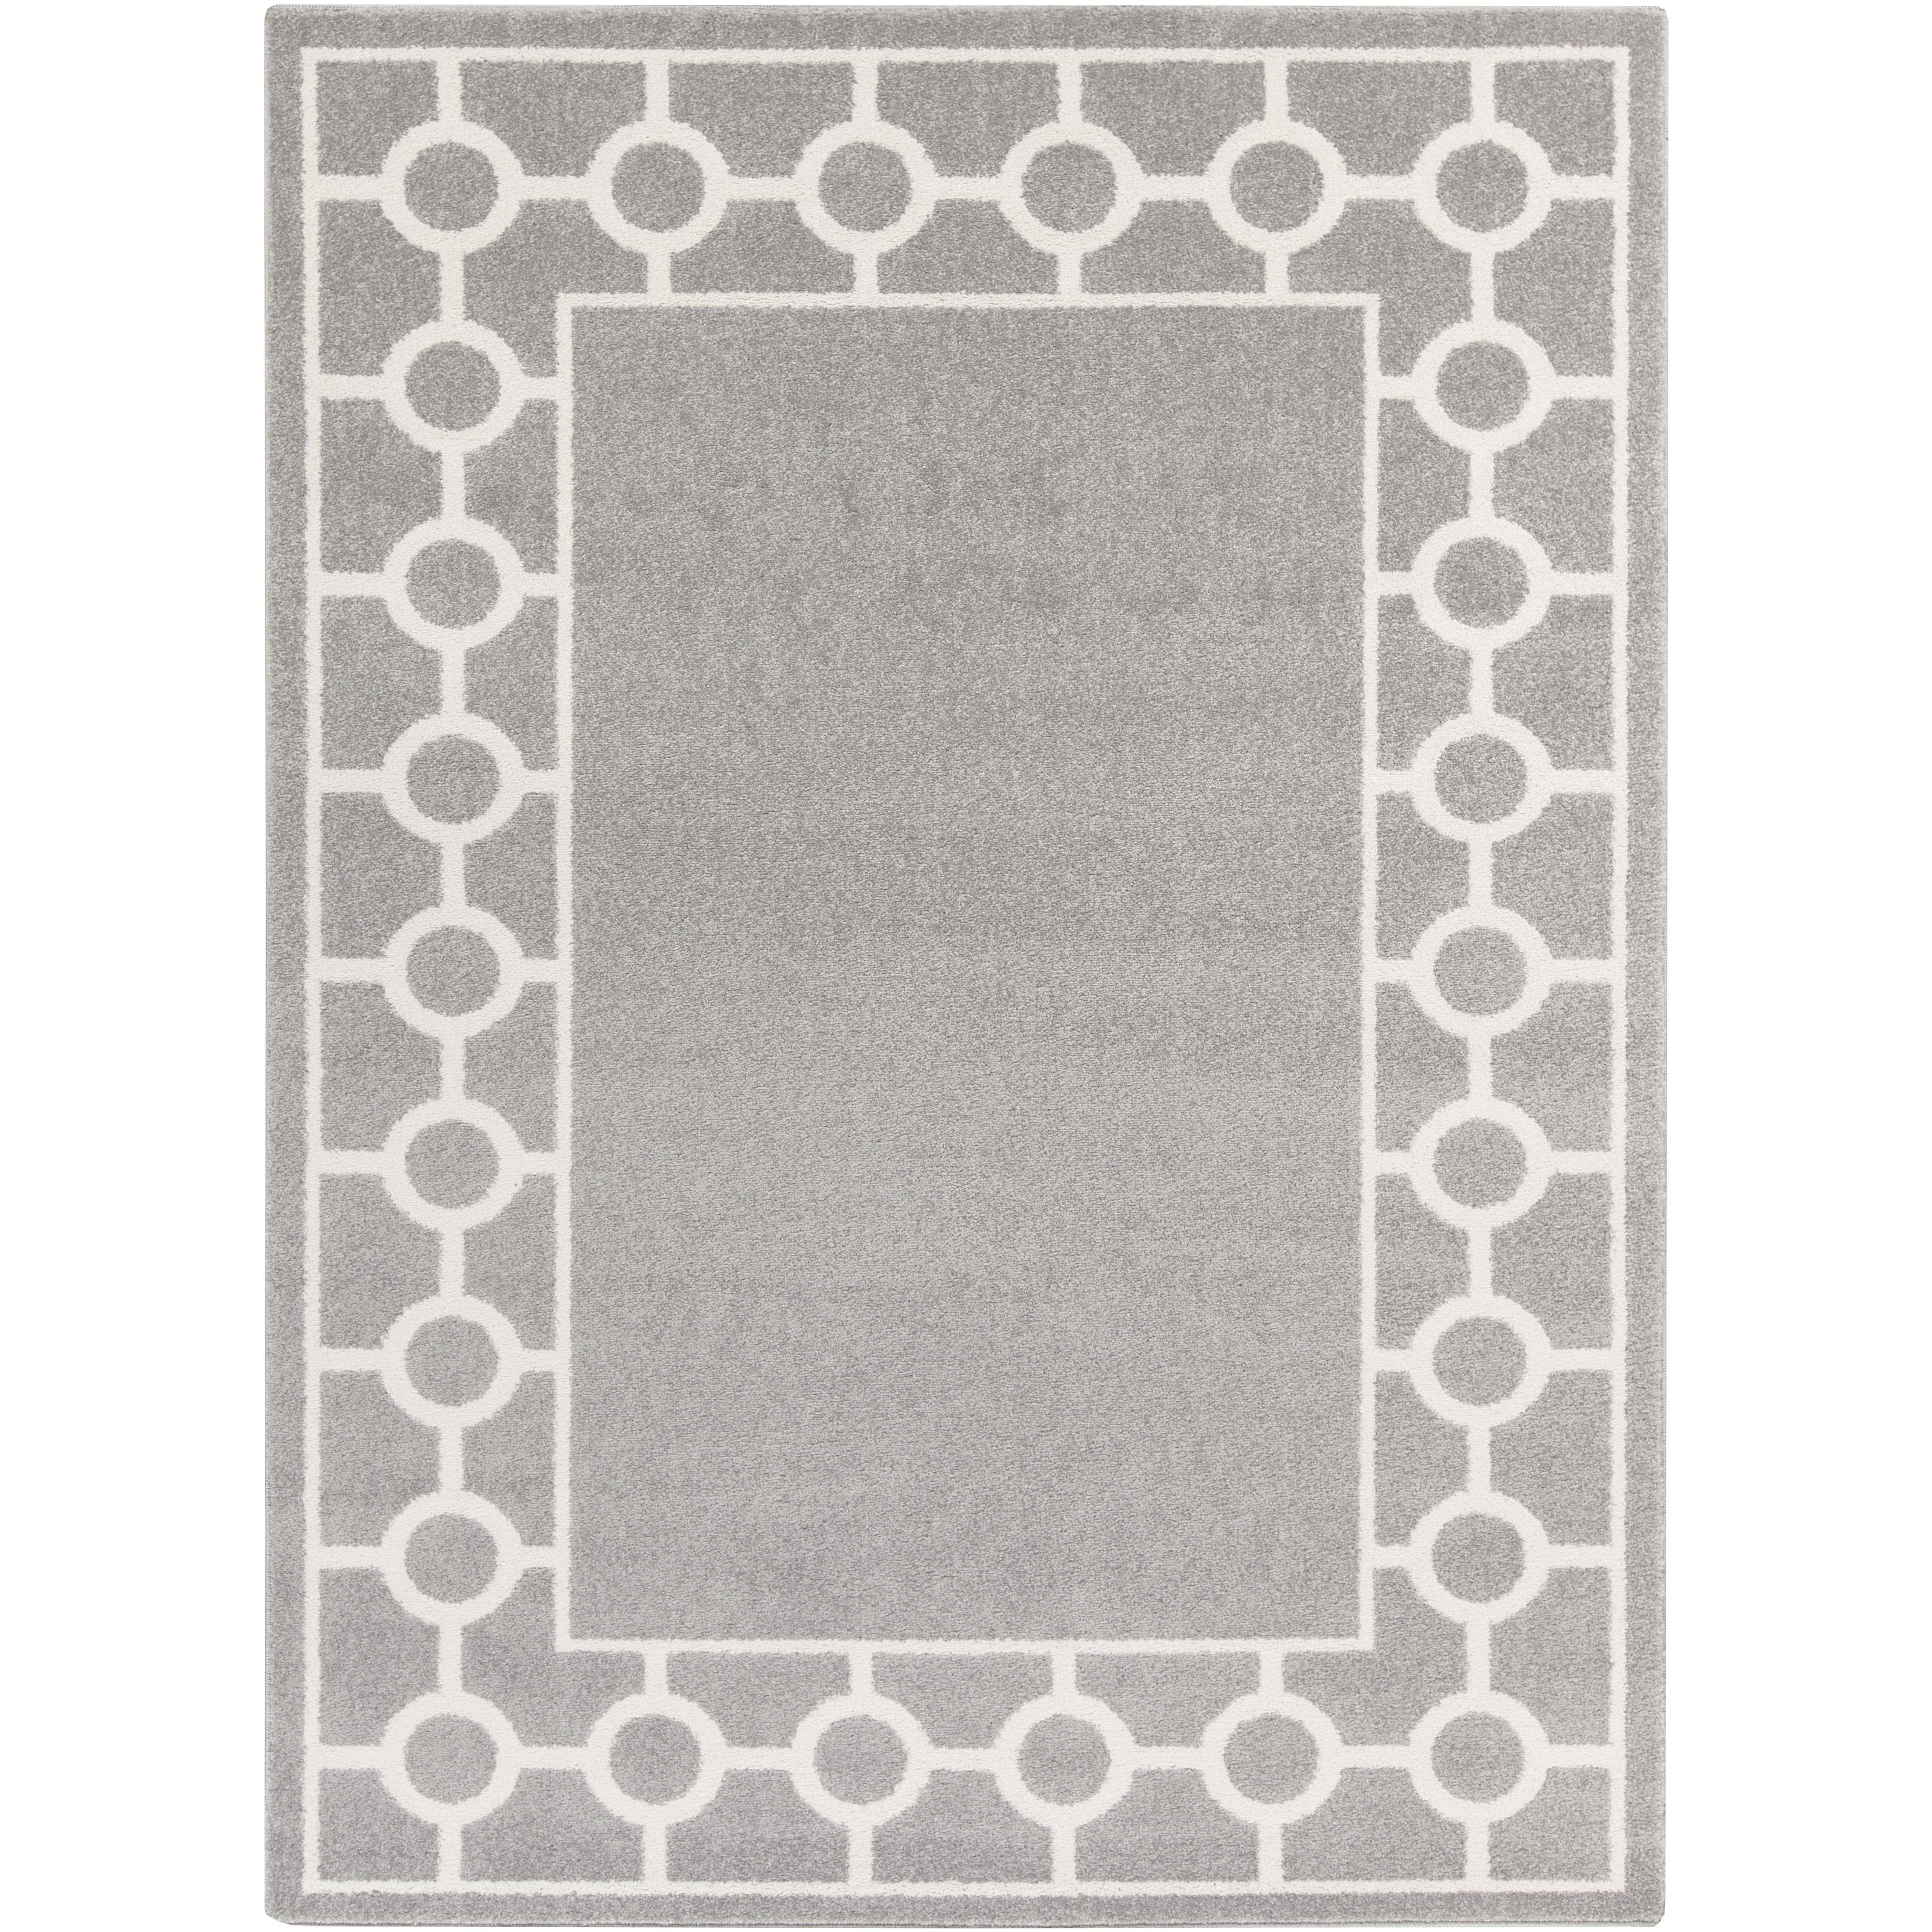 "Surya Rugs Horizon 3'3"" x 5' - Item Number: HRZ1062-335"